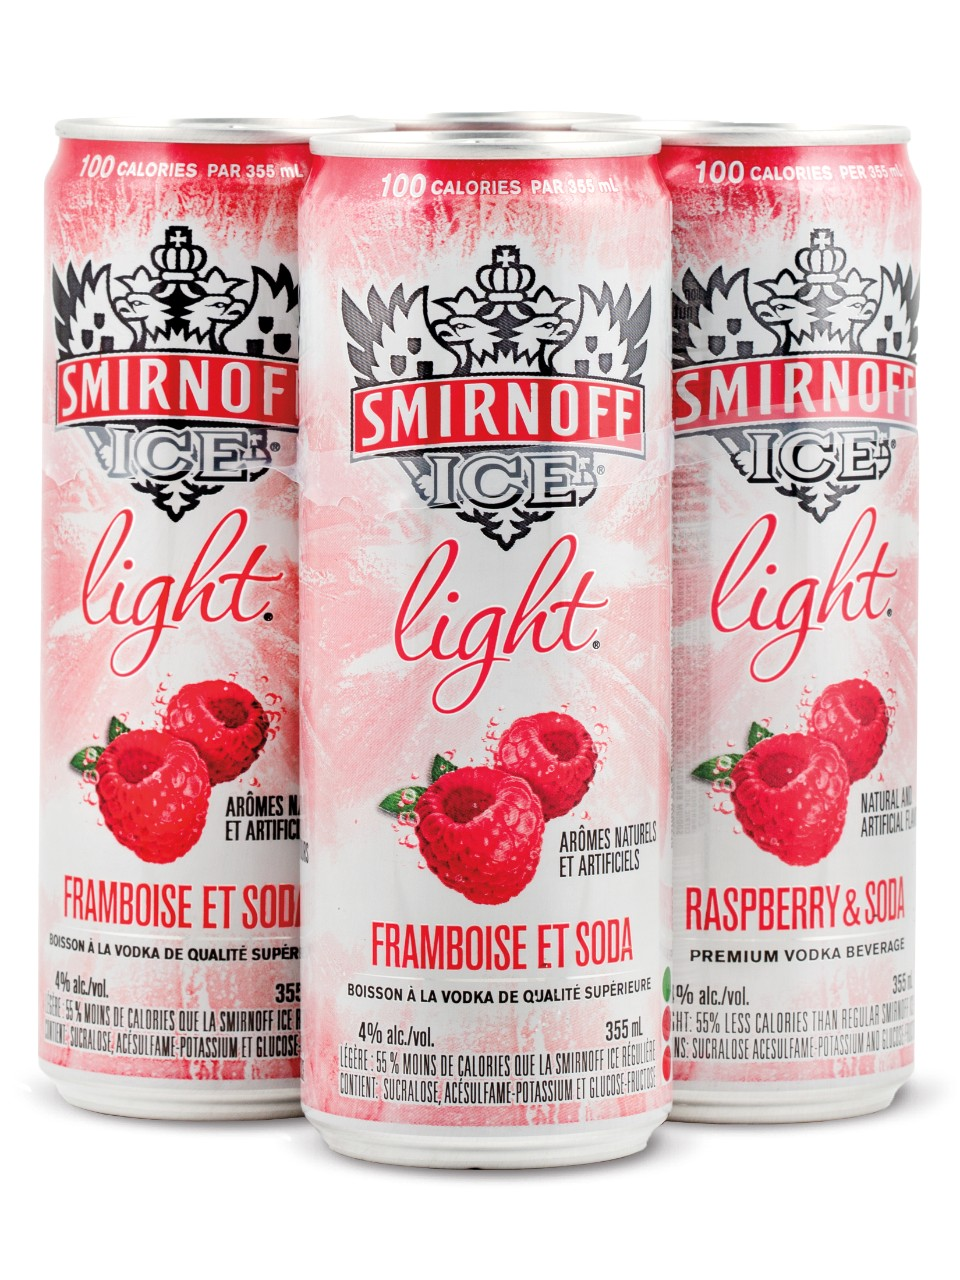 Smirnoff Ice Light Raspberry & Soda                                                                                             -A